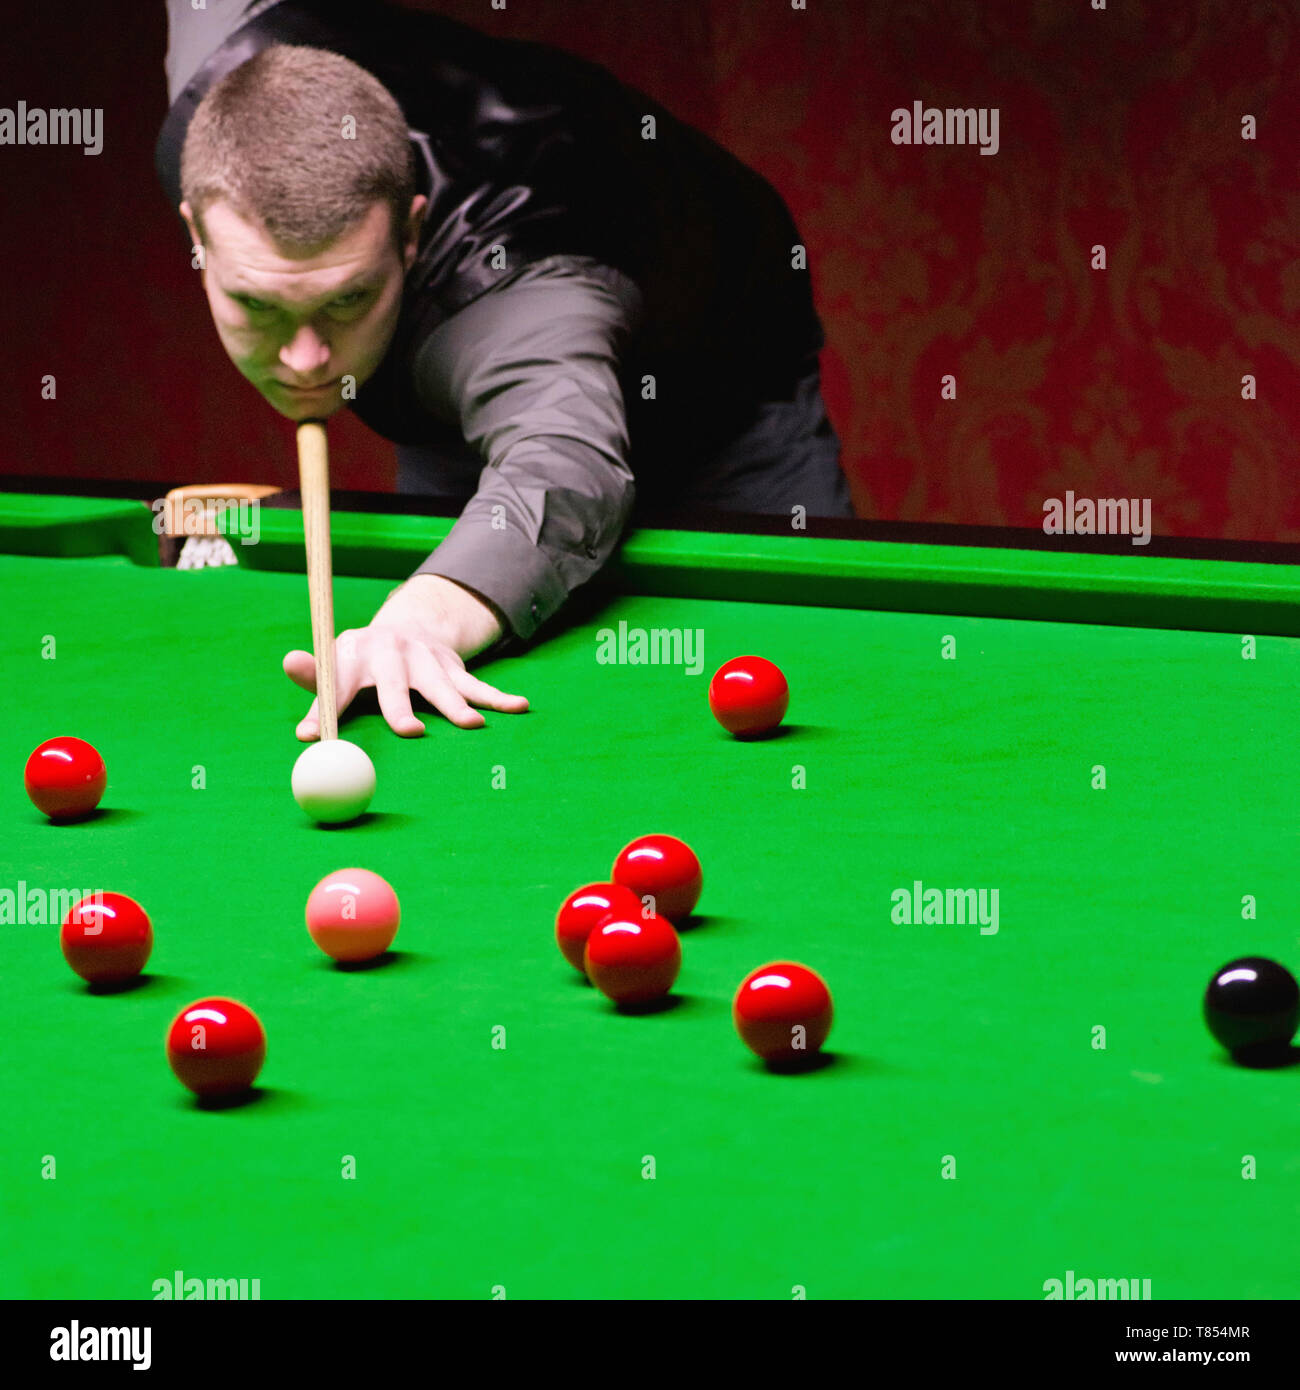 Snooker player taking a shot - Stock Image